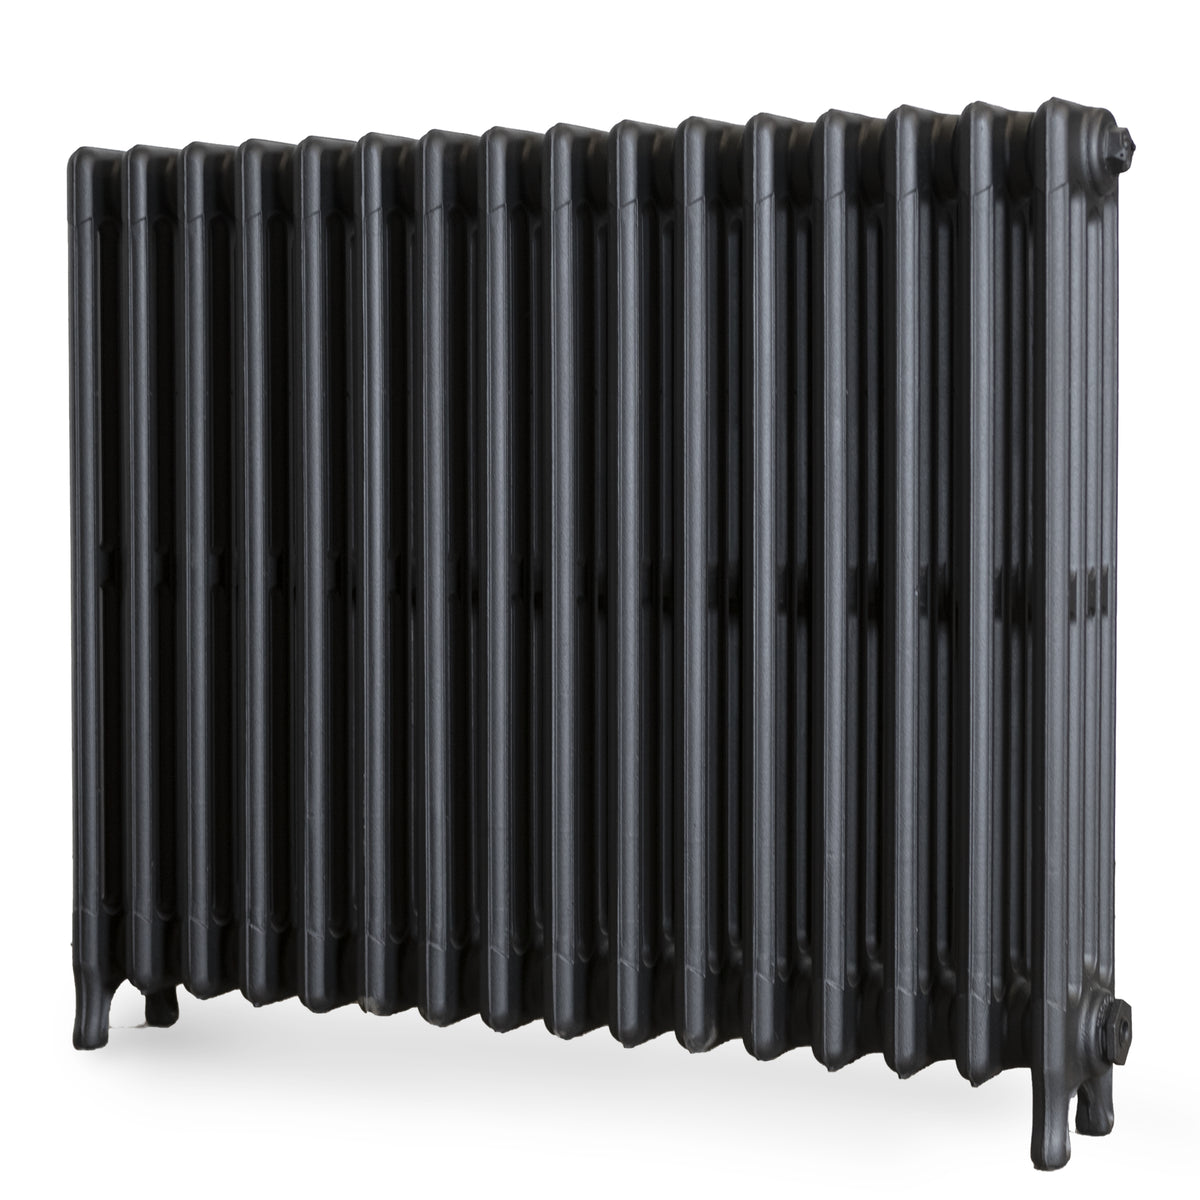 Fully Restored Cast Iron Radiator 4 Column (61.5cm Tall x 80cm Long) | The Architectural Forum